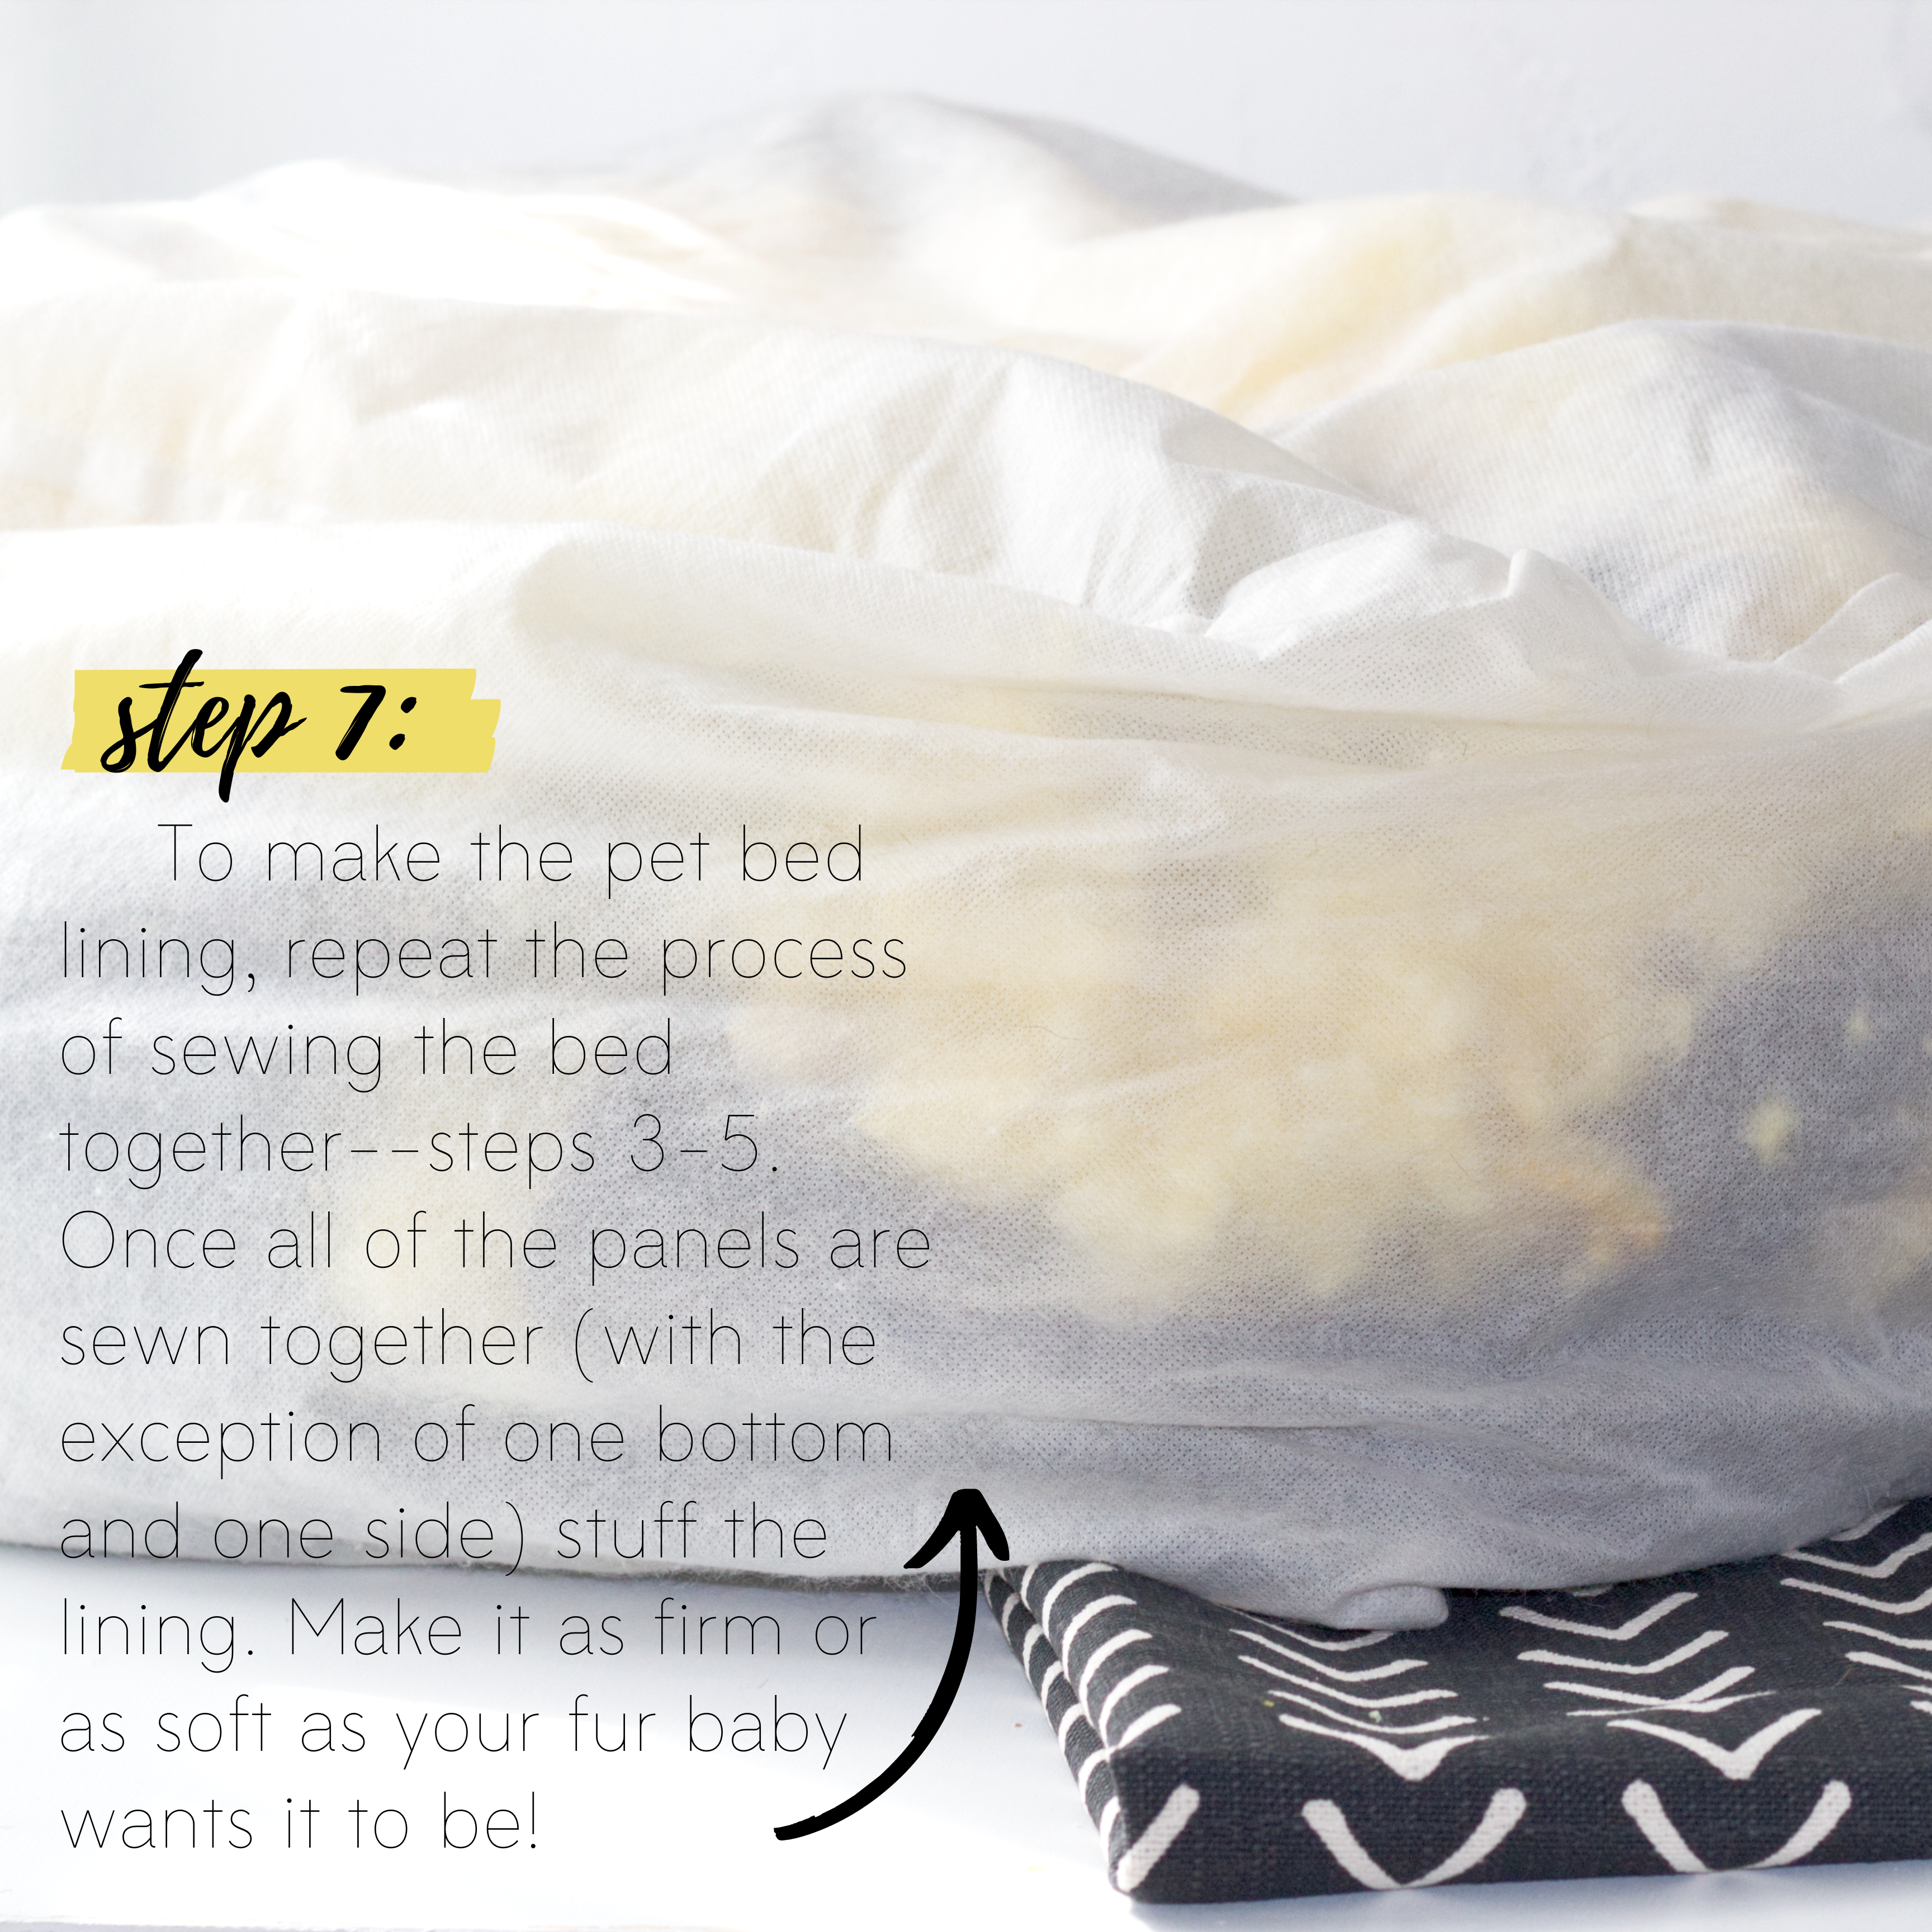 How to sew an easy pet bed DIY sewing tutorial: Step 7